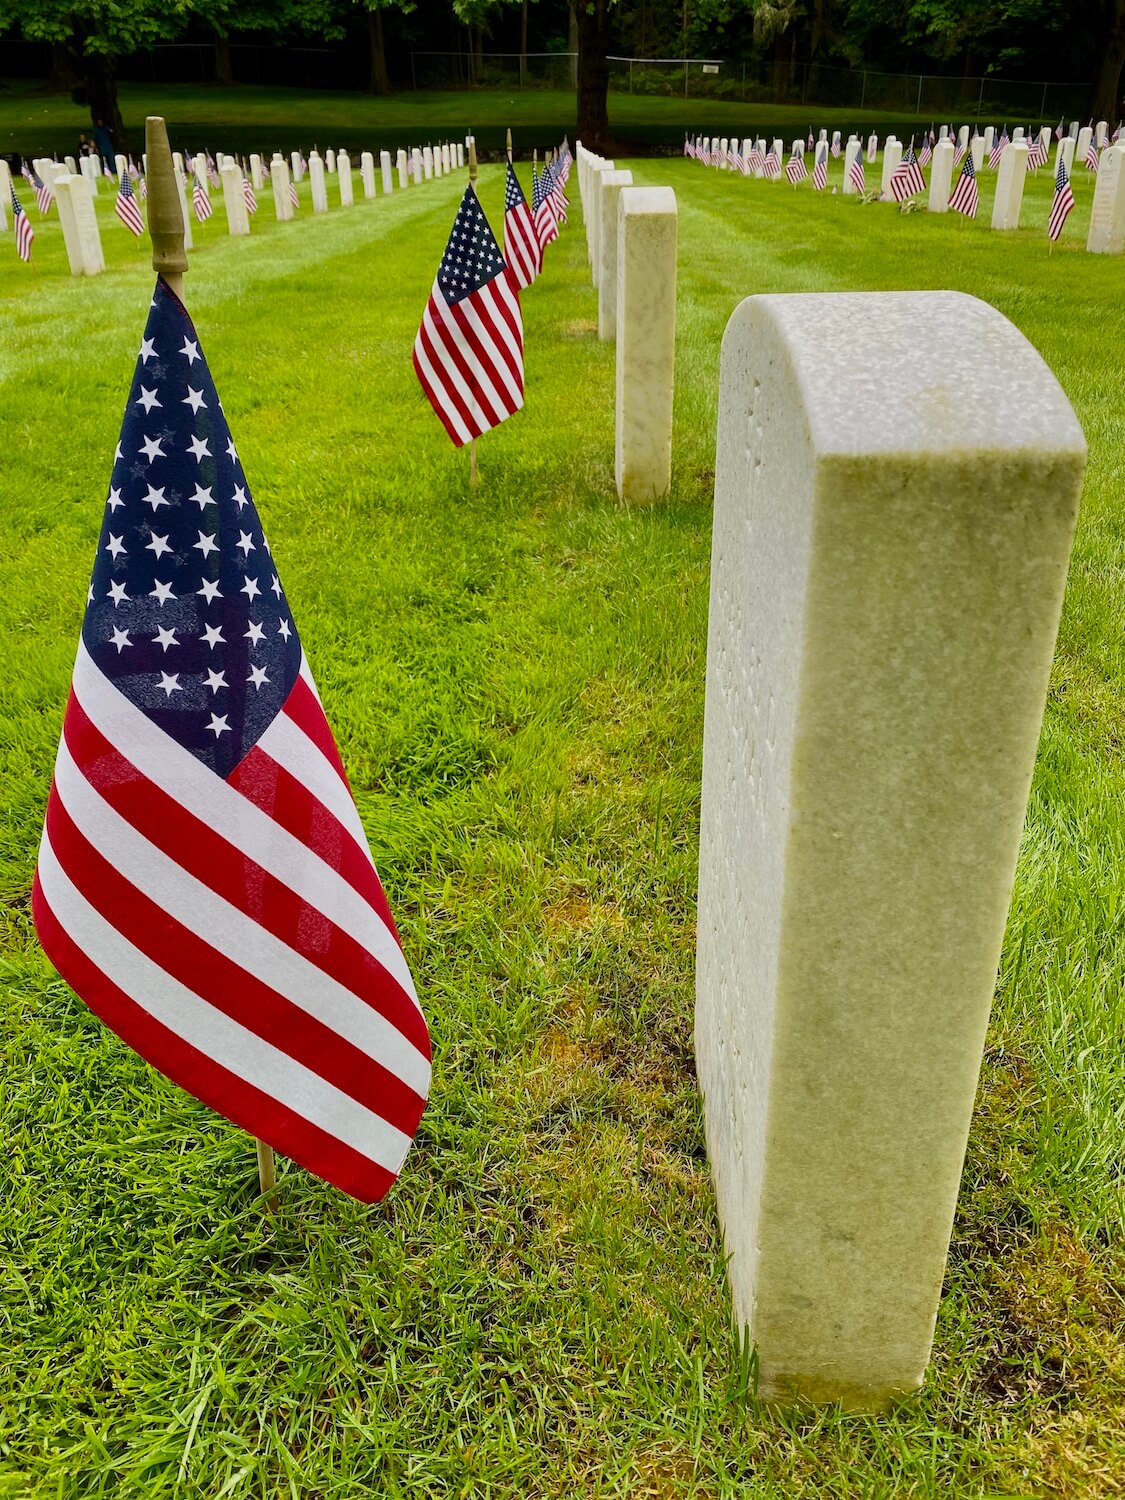 Cream colored marble grave markers are lined up in the hundreds at this military cemetery in Seattle.  For the Memorial Day celebration, each market has a crisp American flag placed upright in front of the stones on a neatly mowed field of green grass.